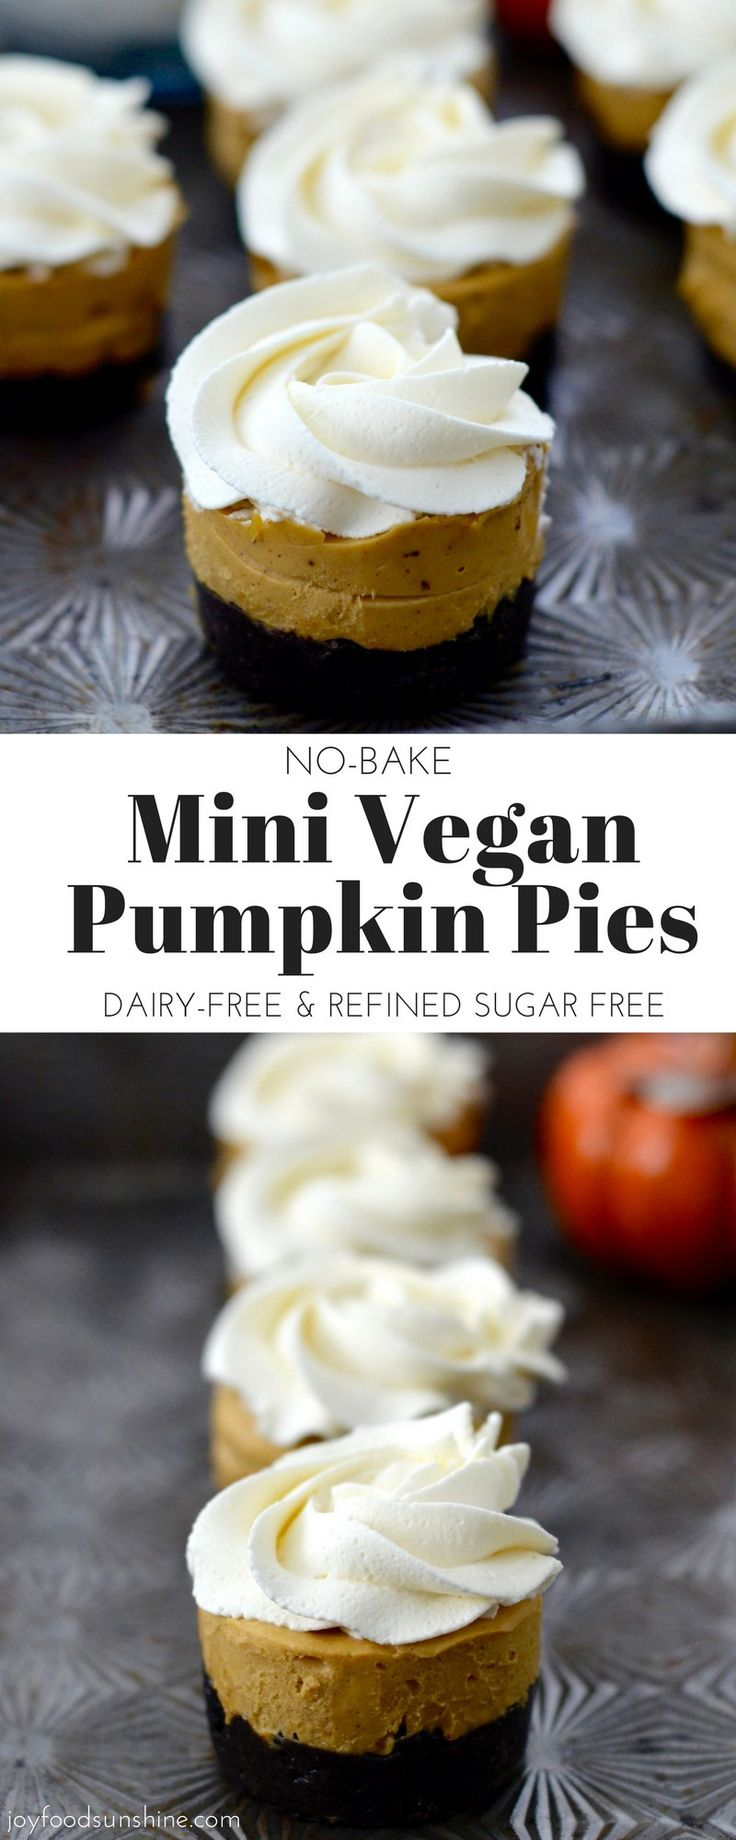 No-Bake Mini Vegan Pumpkin Pies are the perfect elegant fall treat! They are gluten-free, dairy-free, refined sugar free and vegan!